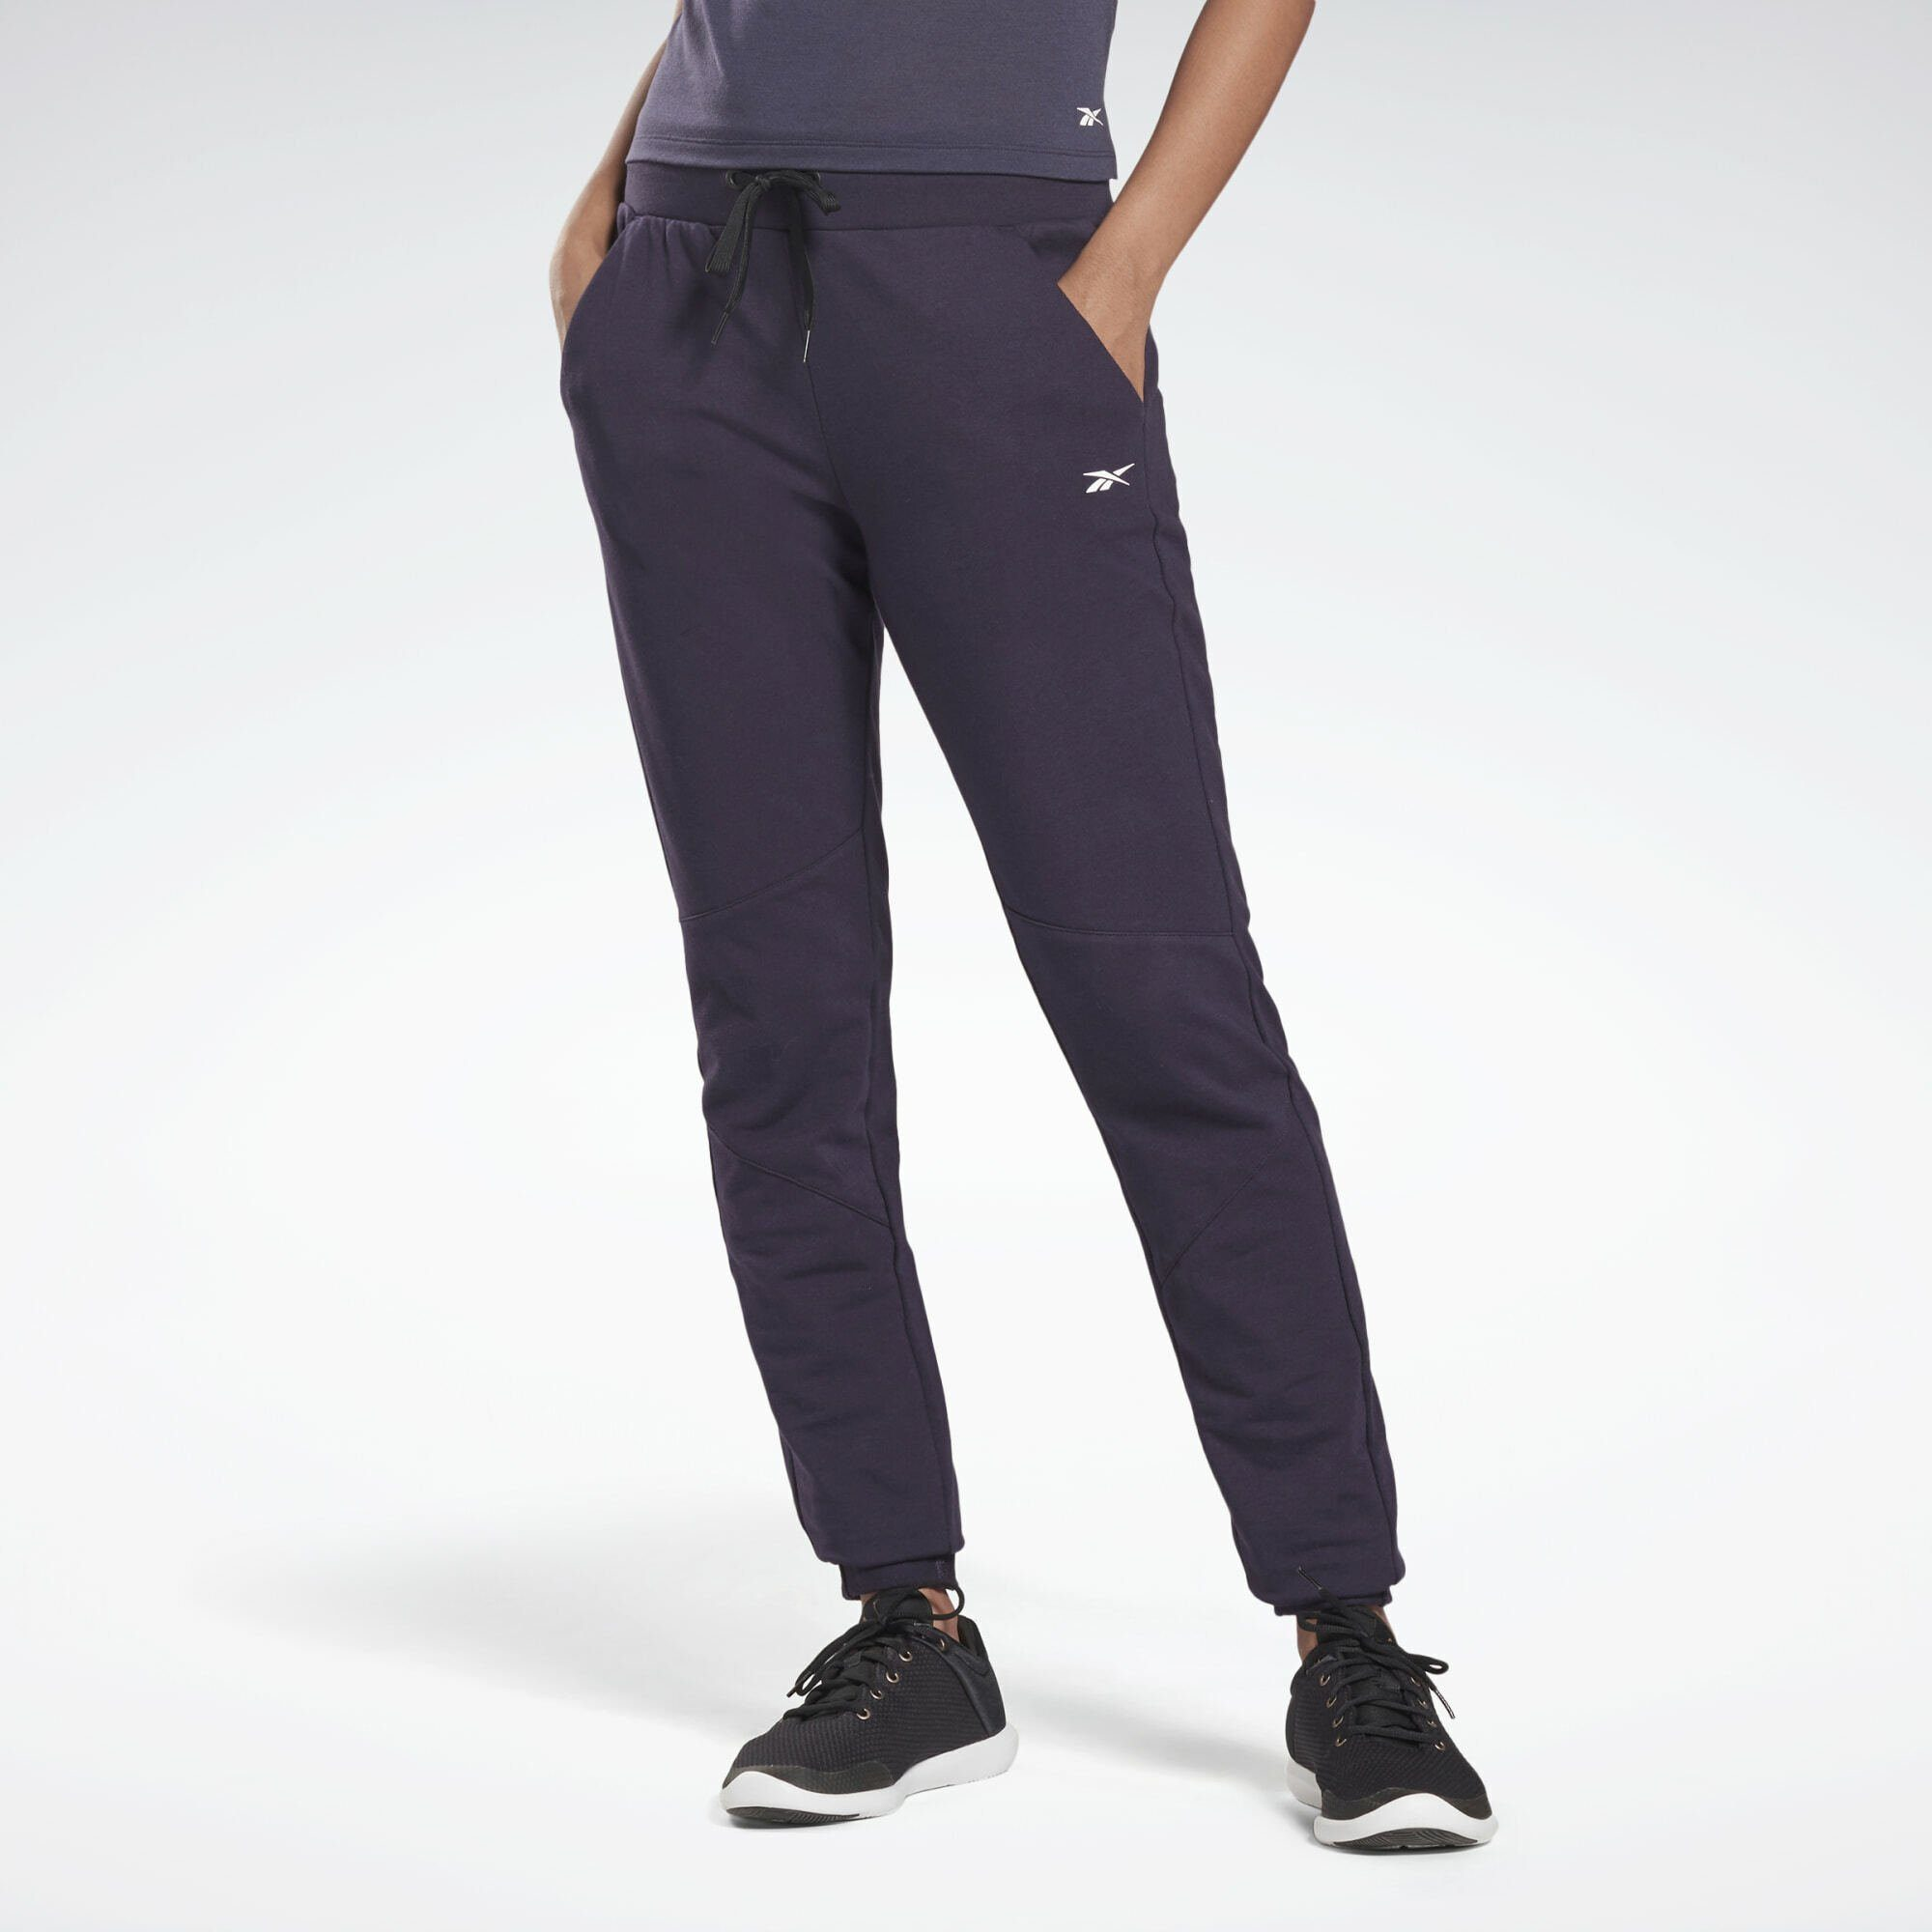 Reebok Sporthose LES MILLS® Joggers, French Terry aus 95% Baumwolle / 5% Elasthan